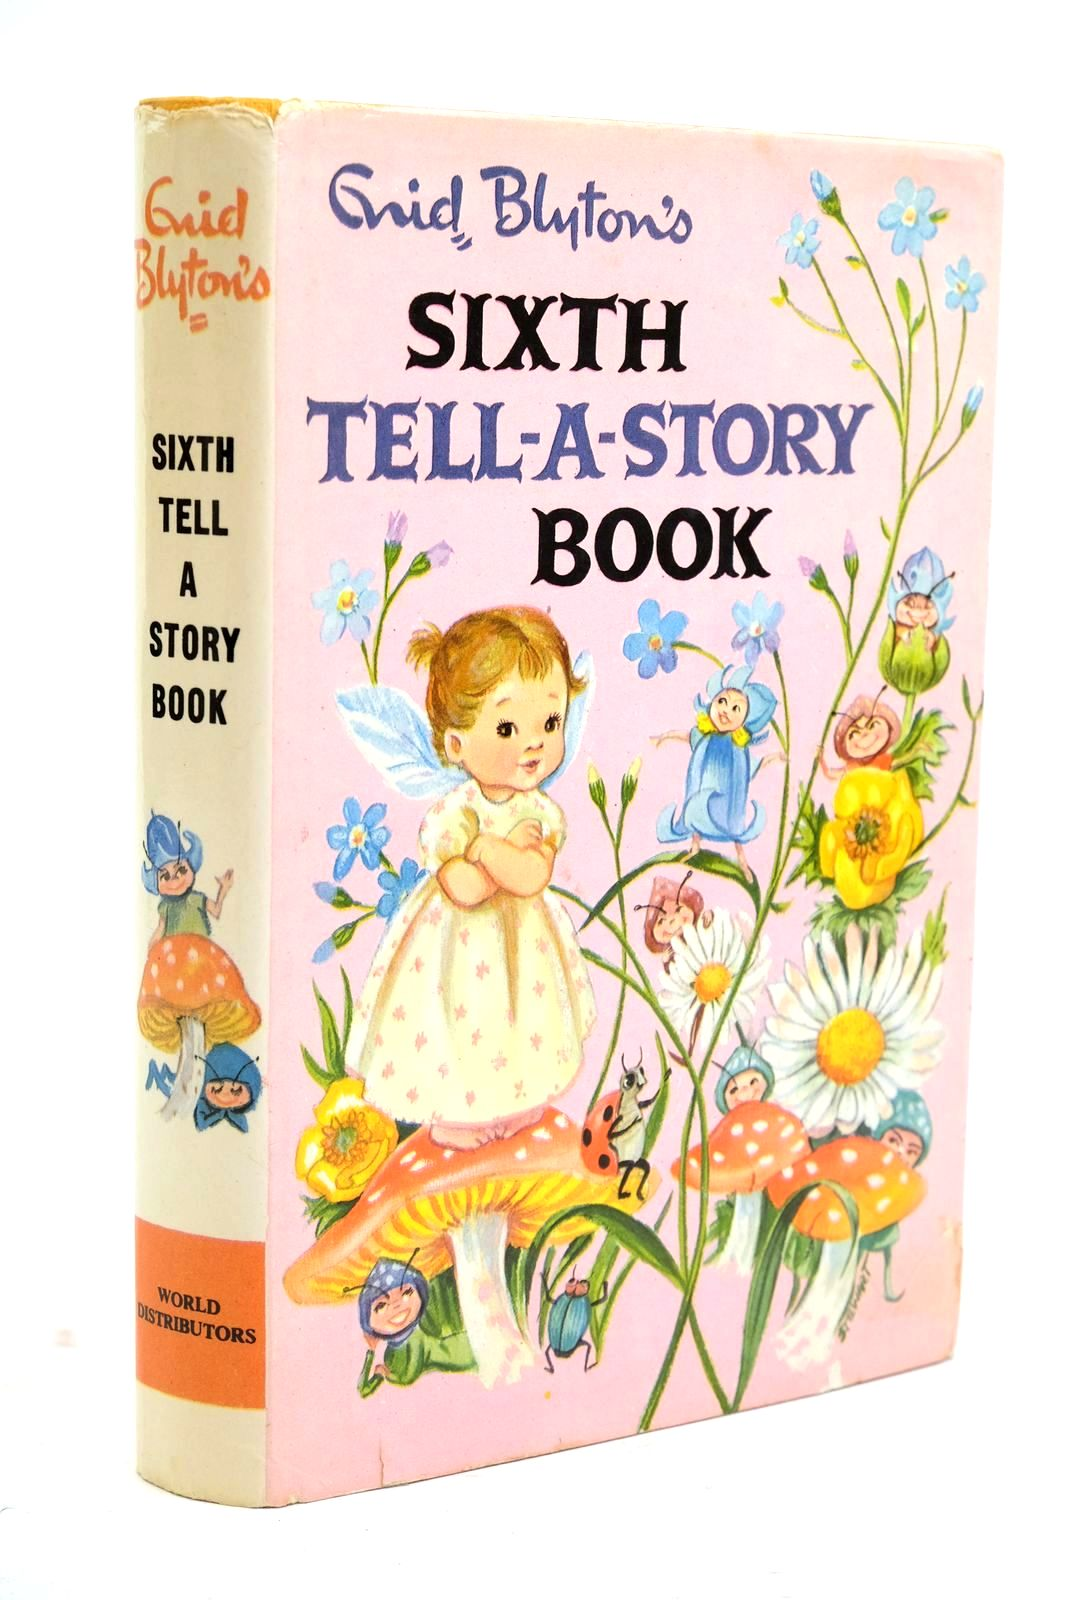 Photo of ENID BLYTON'S SIXTH TELL-A-STORY BOOK- Stock Number: 1321088